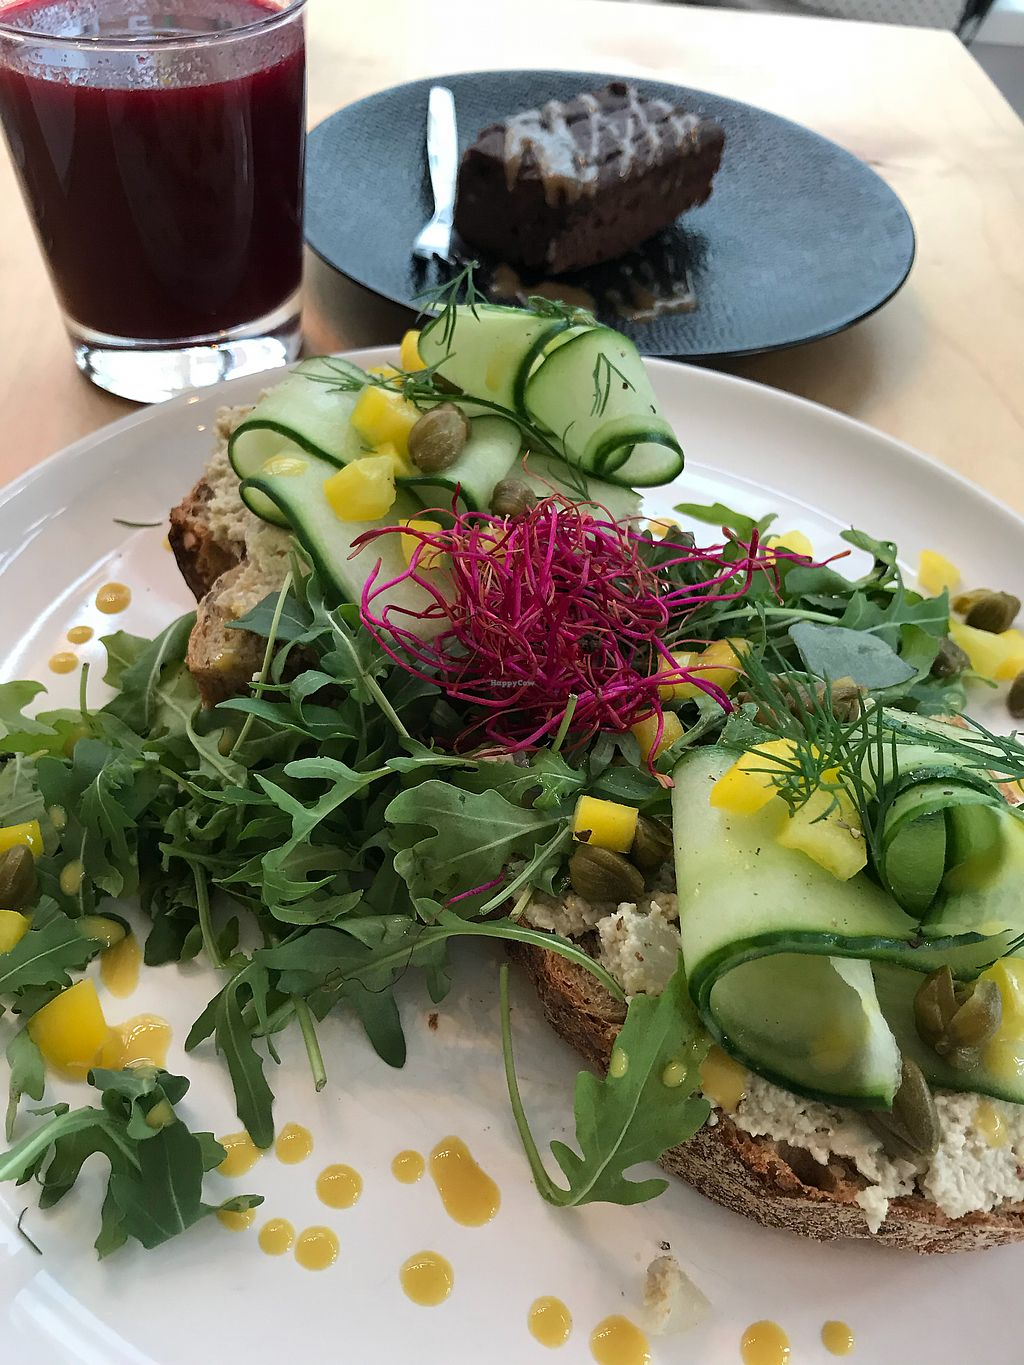 """Photo of Happy Earth  by <a href=""""/members/profile/Micca"""">Micca</a> <br/>""""Tuna"""" sandwich, beet juice and homemade brownie <br/> November 12, 2017  - <a href='/contact/abuse/image/68882/324685'>Report</a>"""